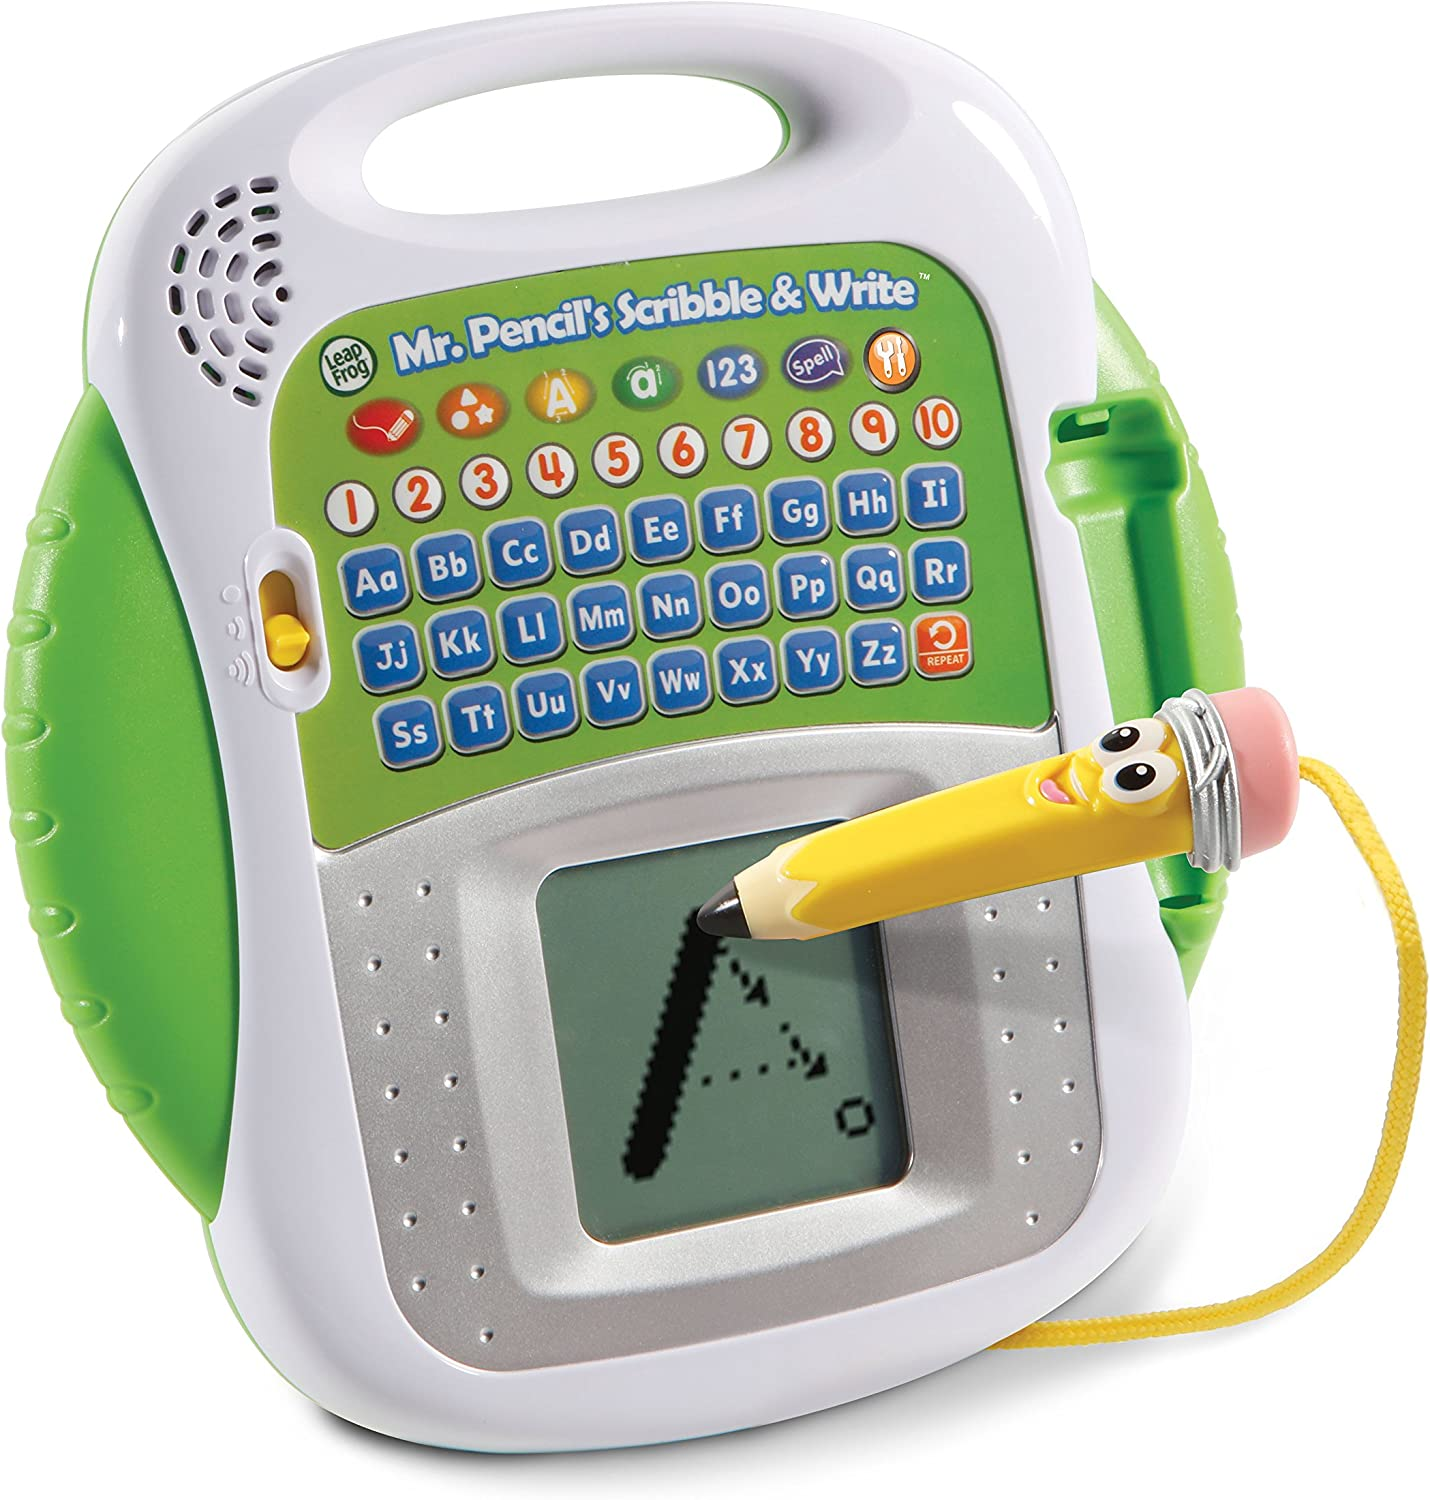 Mr Pencil's Scribble & Write by LeapFrog